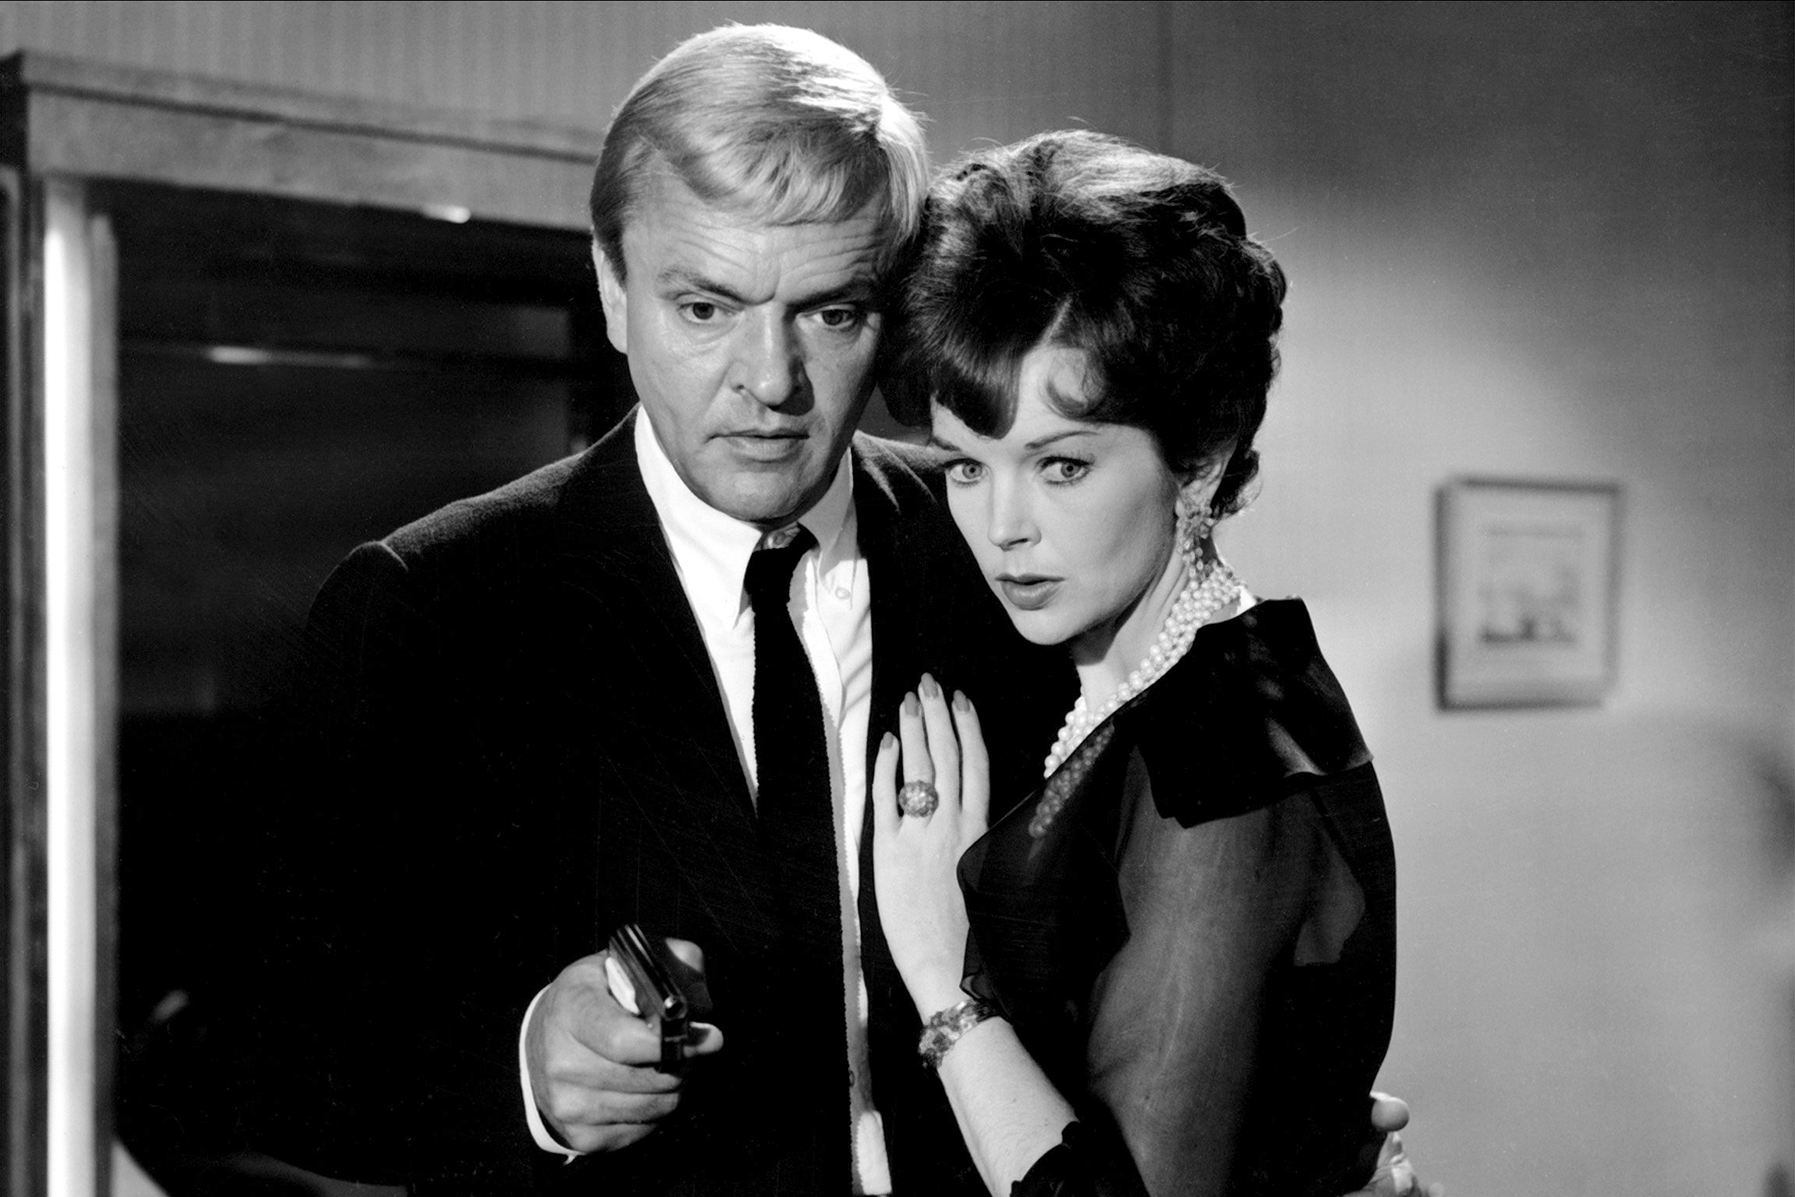 American businessman Peter van Eyck) with Dawn Addams as he investigates the mysteries of the Luxor Hotel in The 1000 Eyes of Dr. Mabuse (1960)